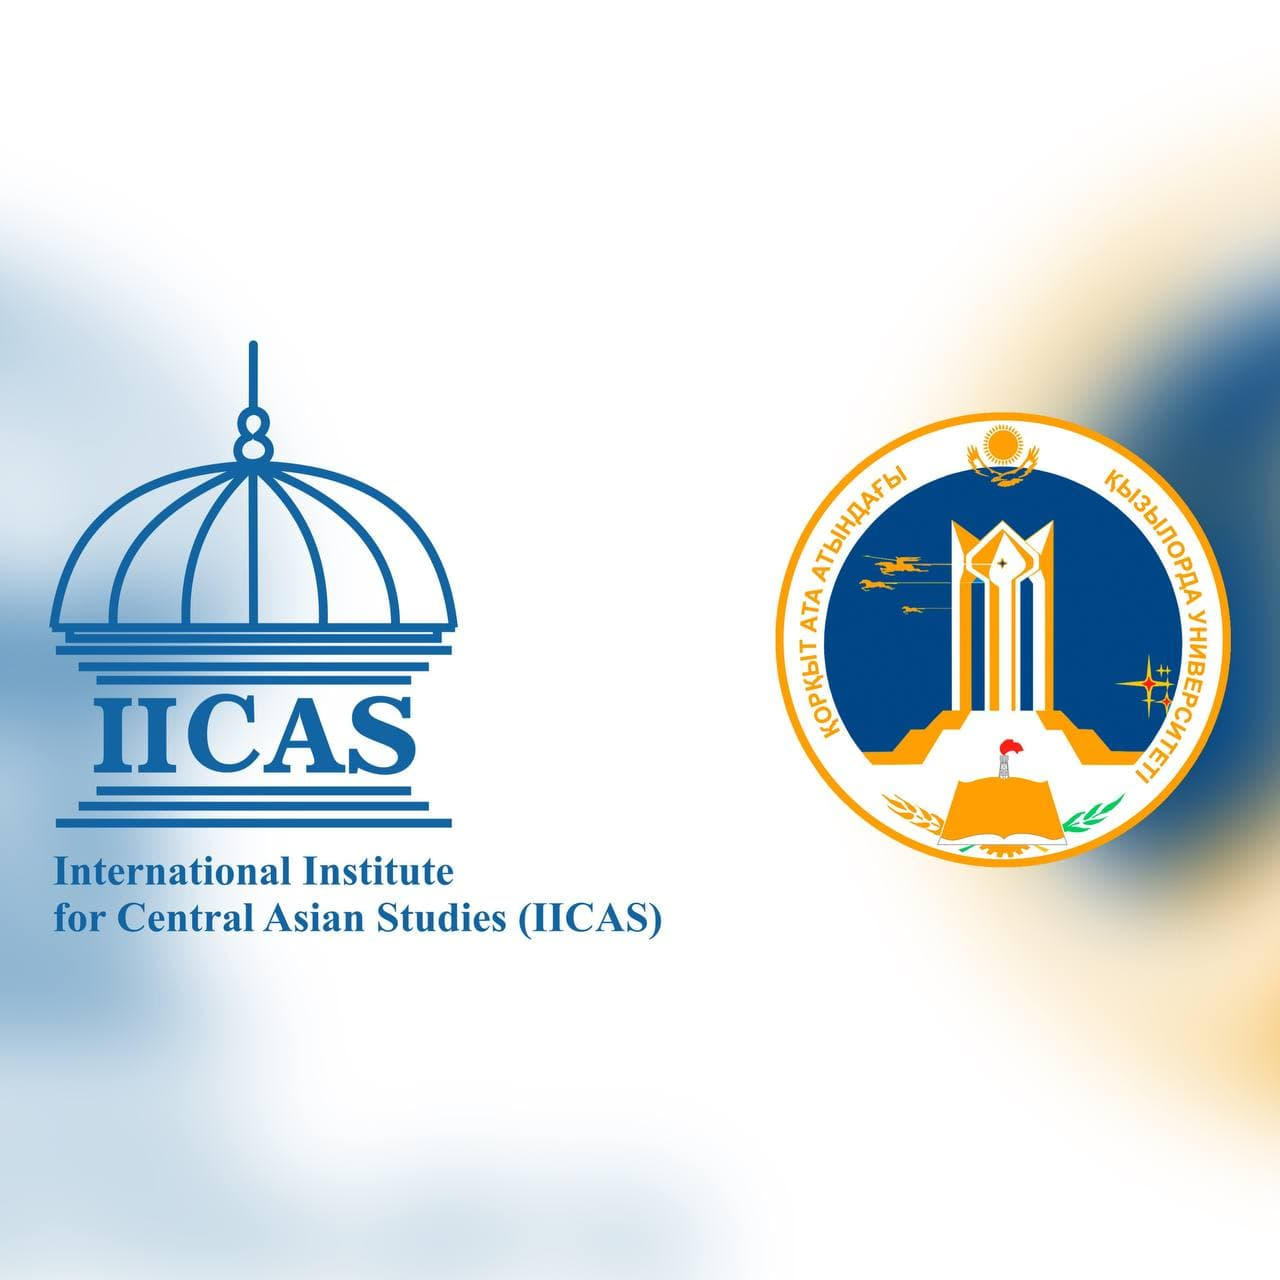 MoU has been signed between the IICAS and Kyzylorda University named after Korkyt Ata